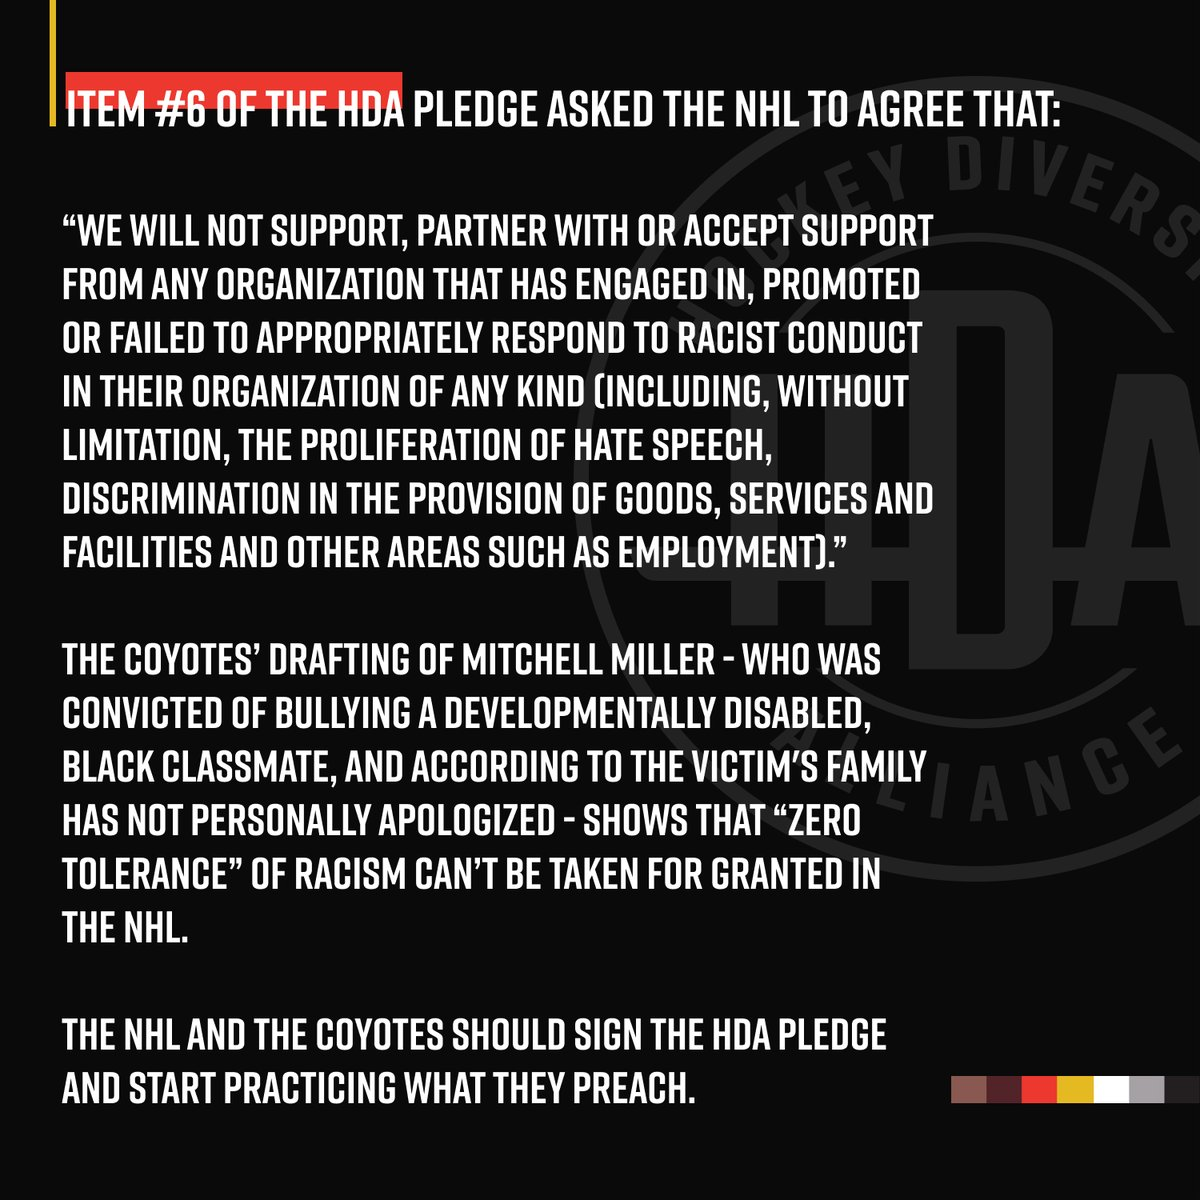 .@NHL and @ArizonaCoyotes should sign the #HDAPledge and start practicing what they preach.